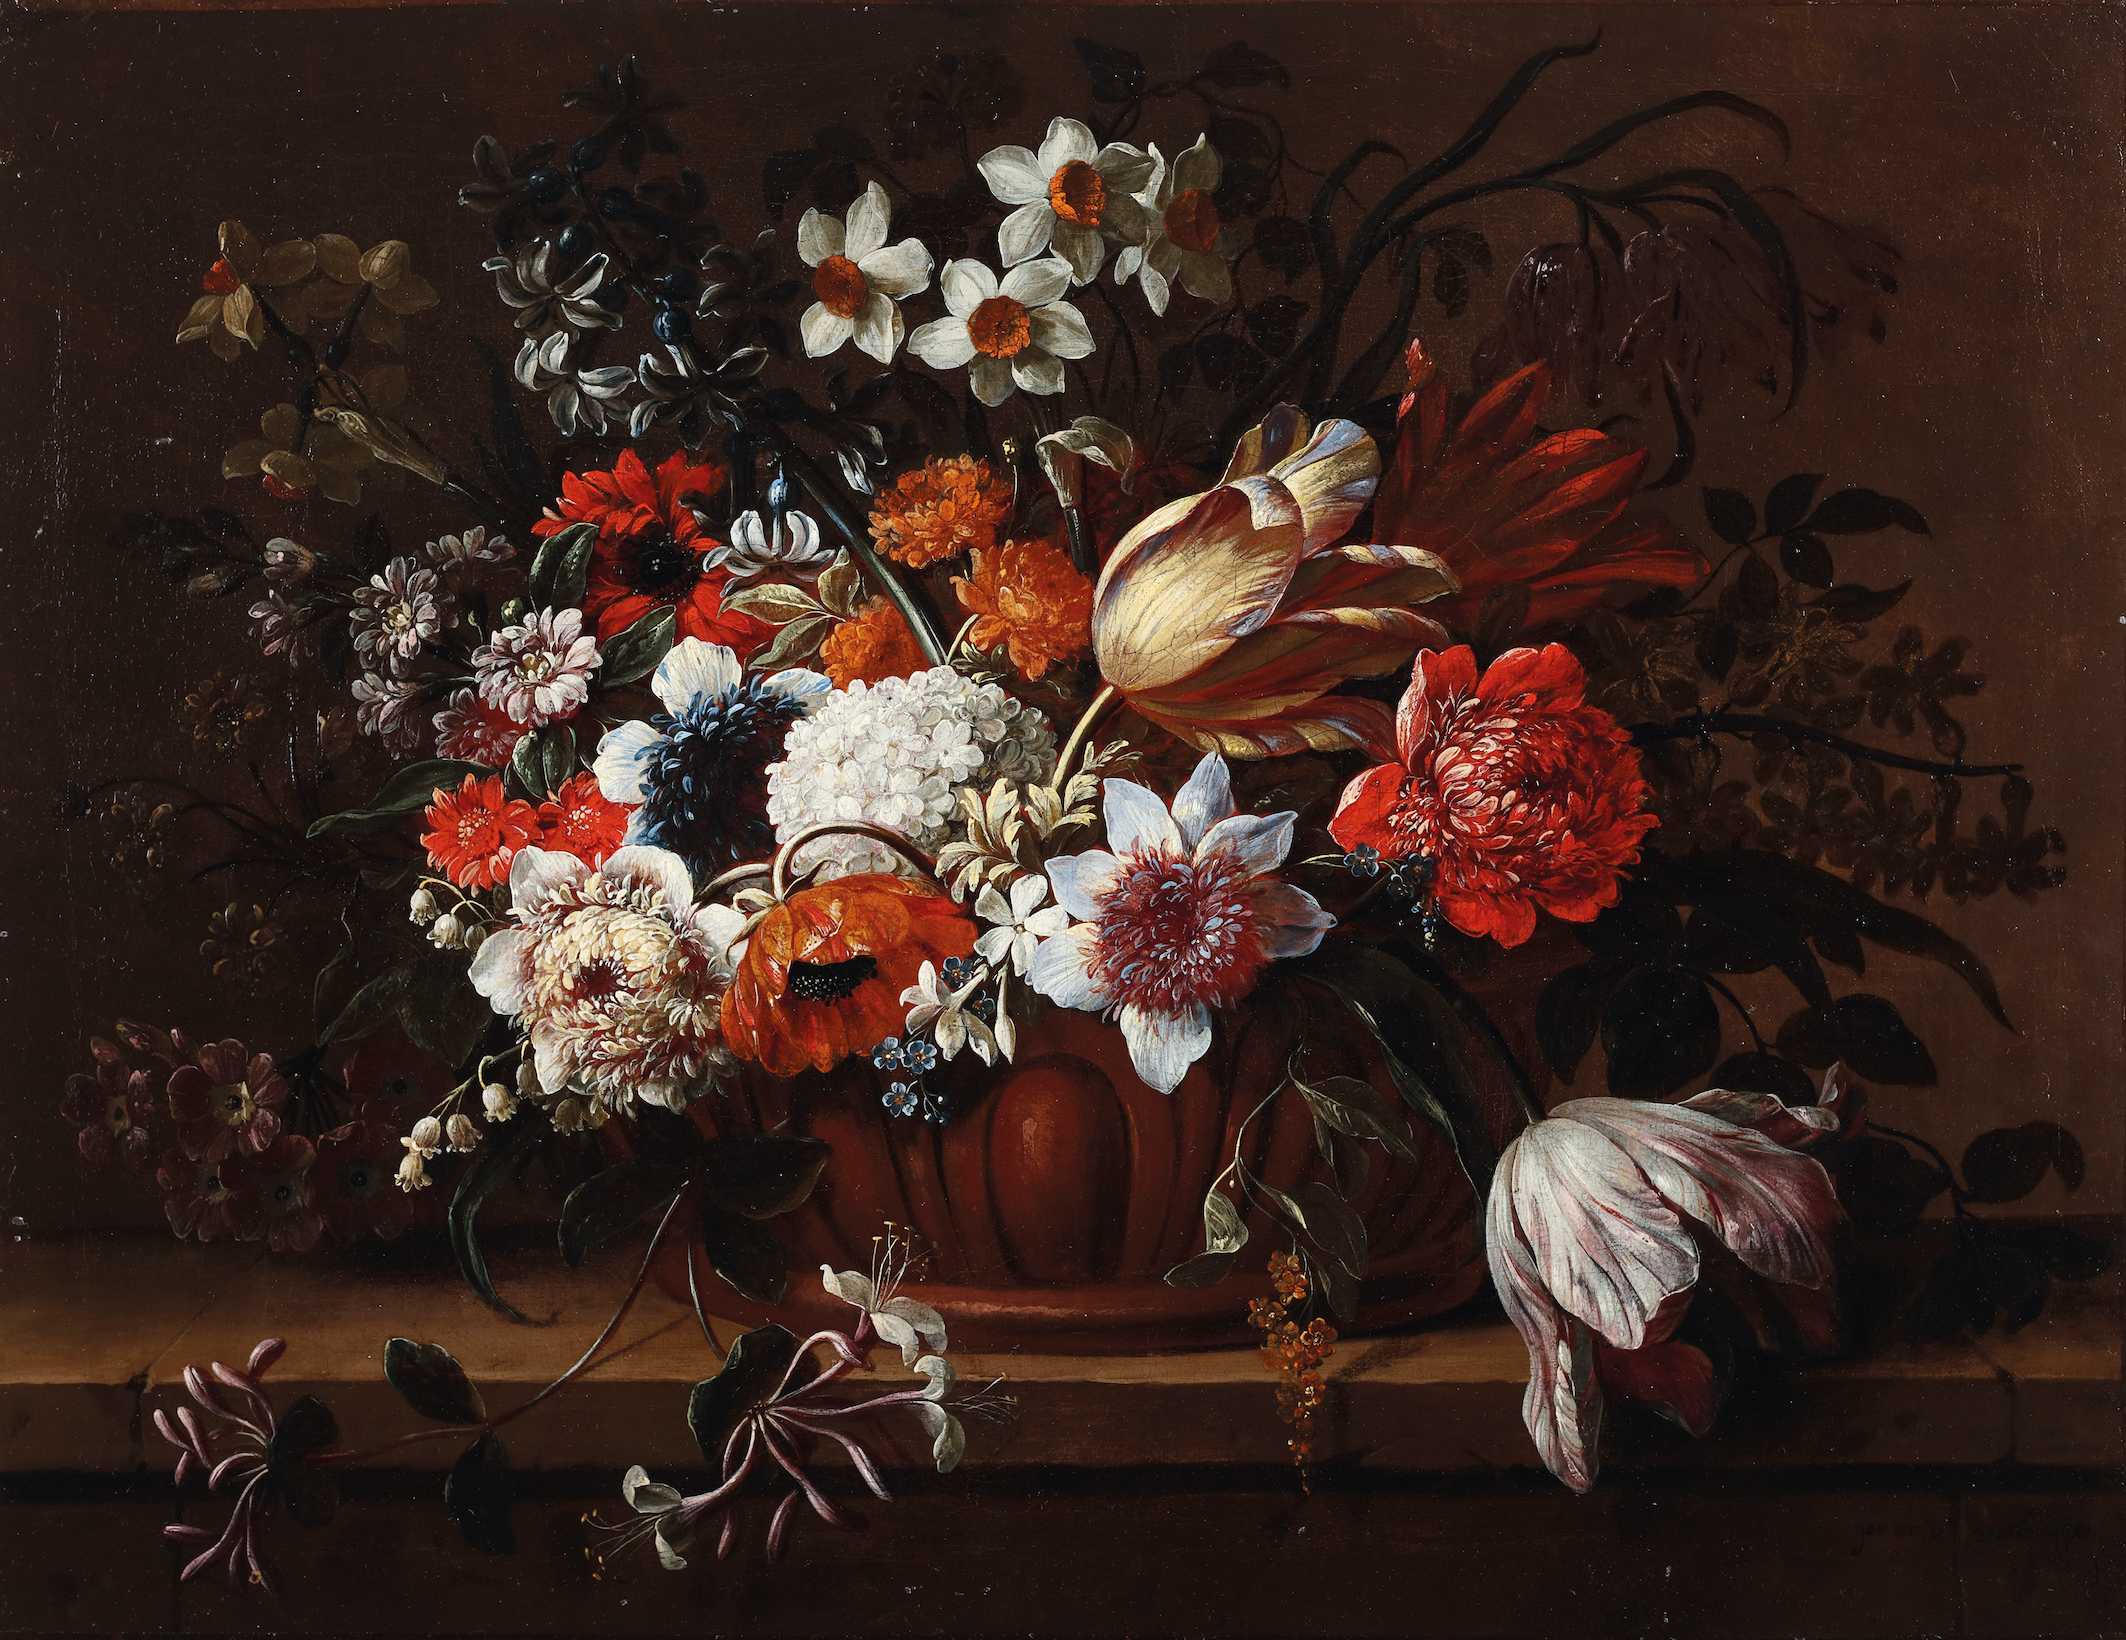 A still life of flowers in a stone urn